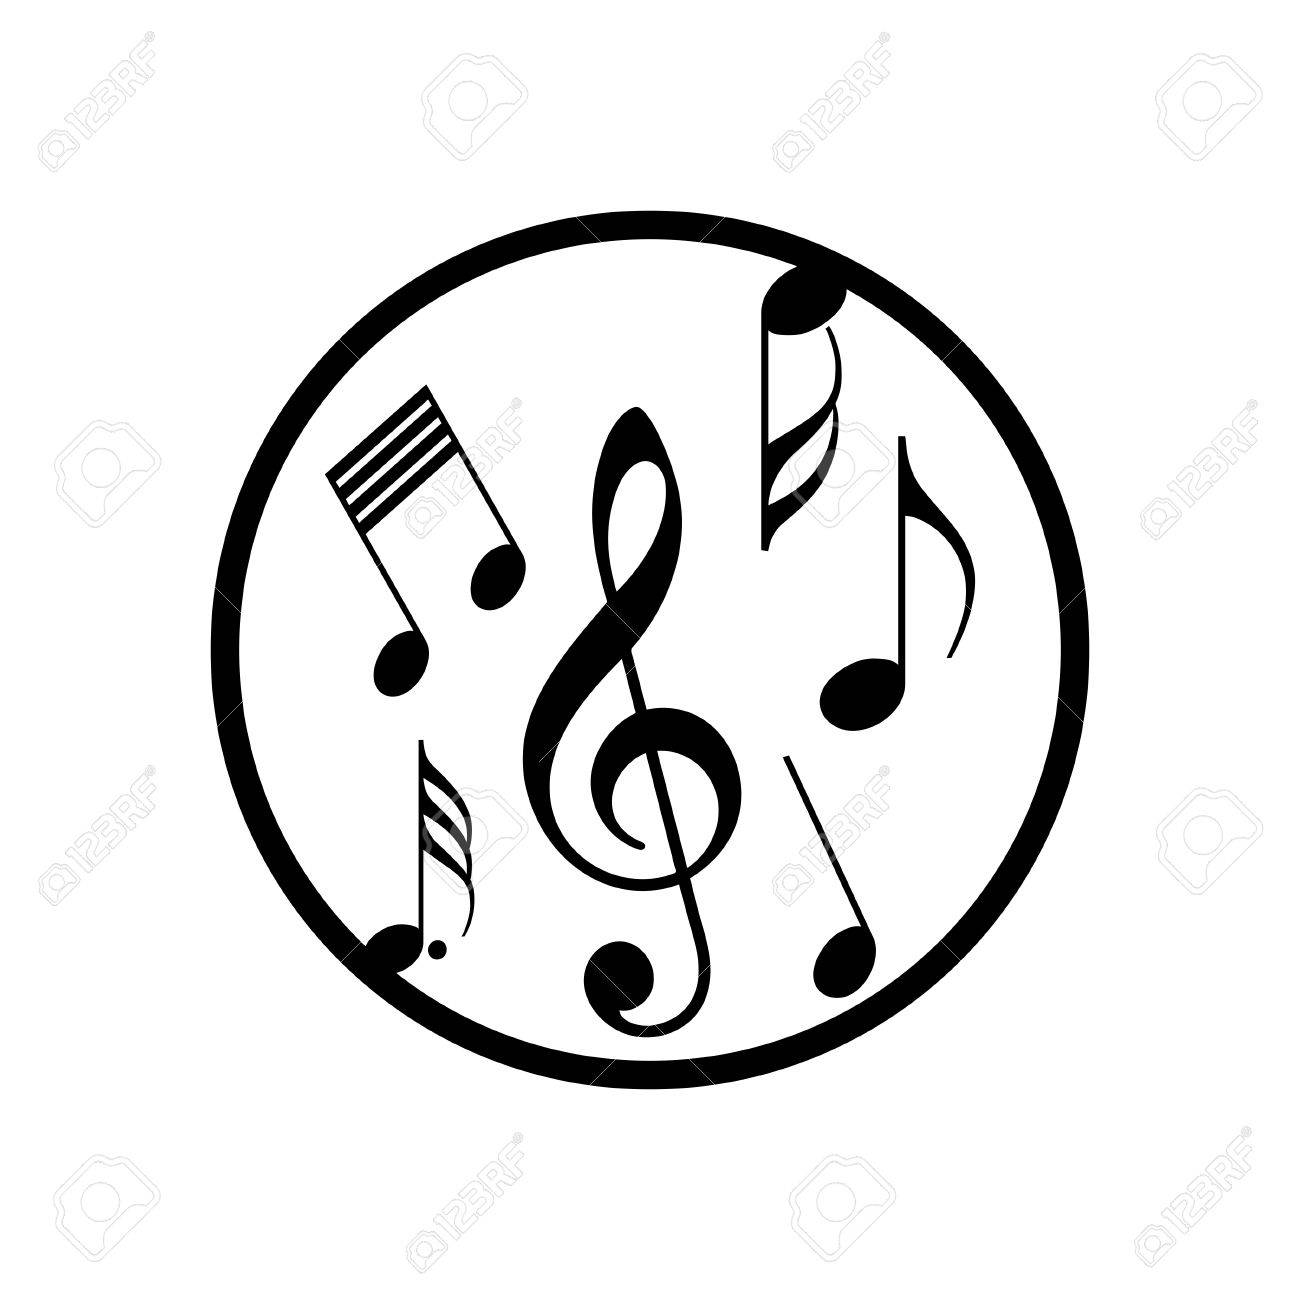 Music Note Icon Royalty Free Cliparts Vectors And Stock